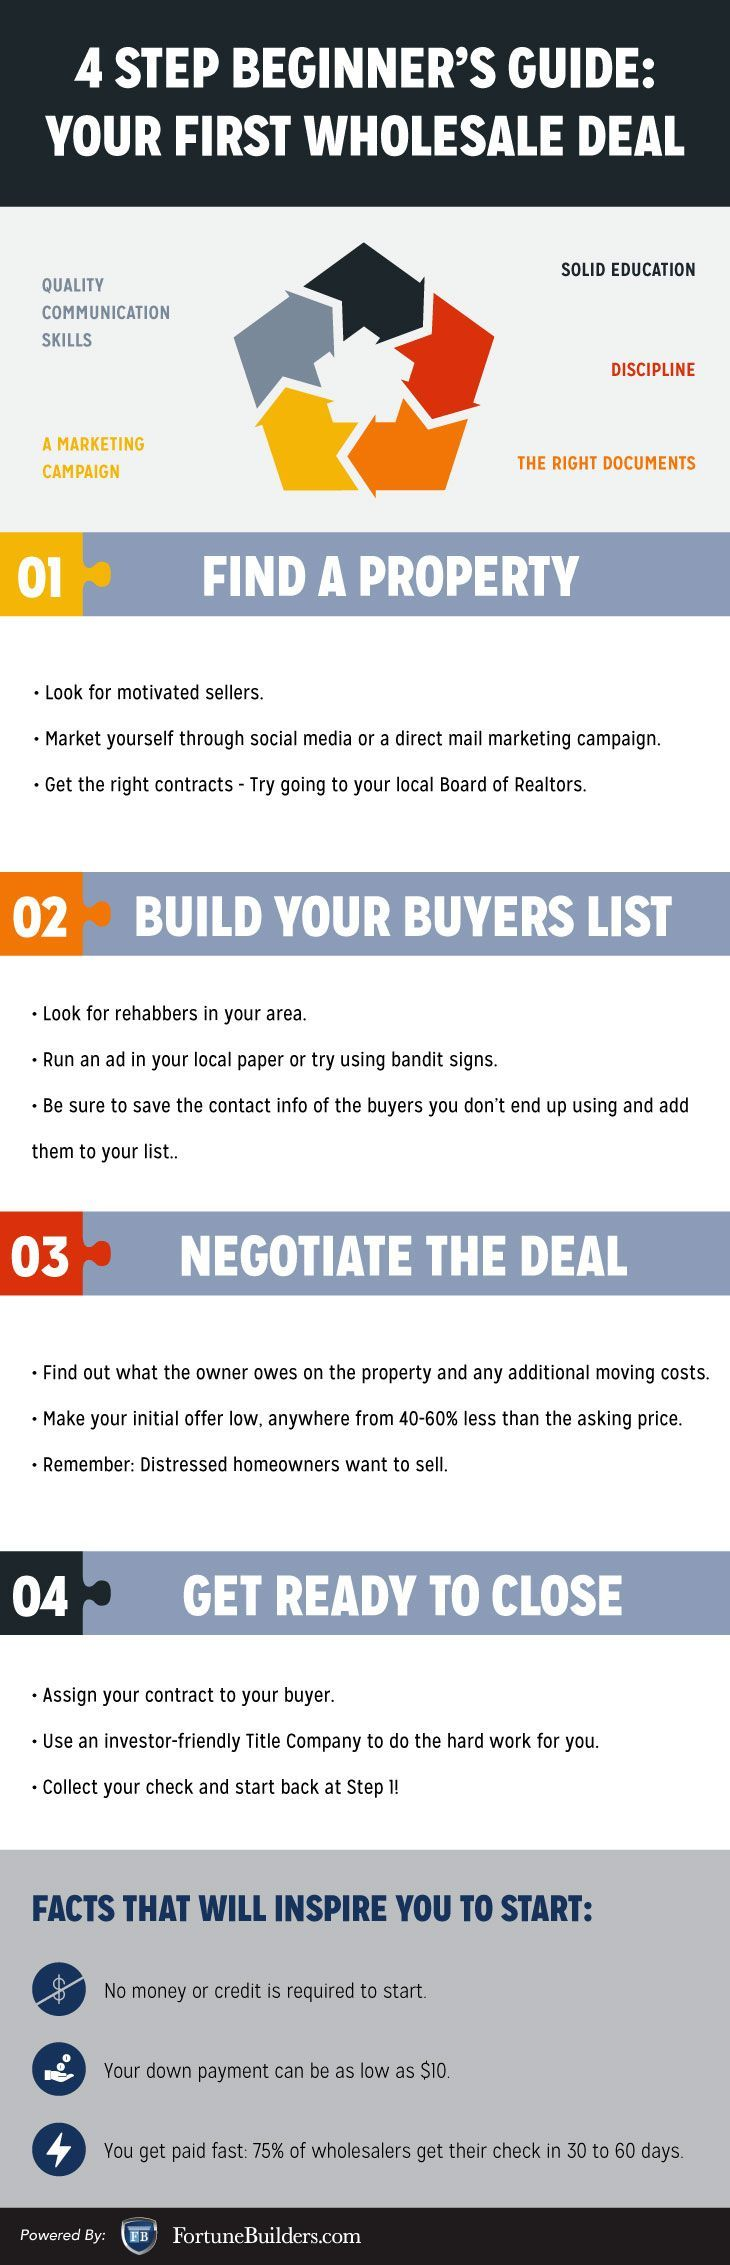 Best 25+ Real estate investing ideas on Pinterest | Real estate ...